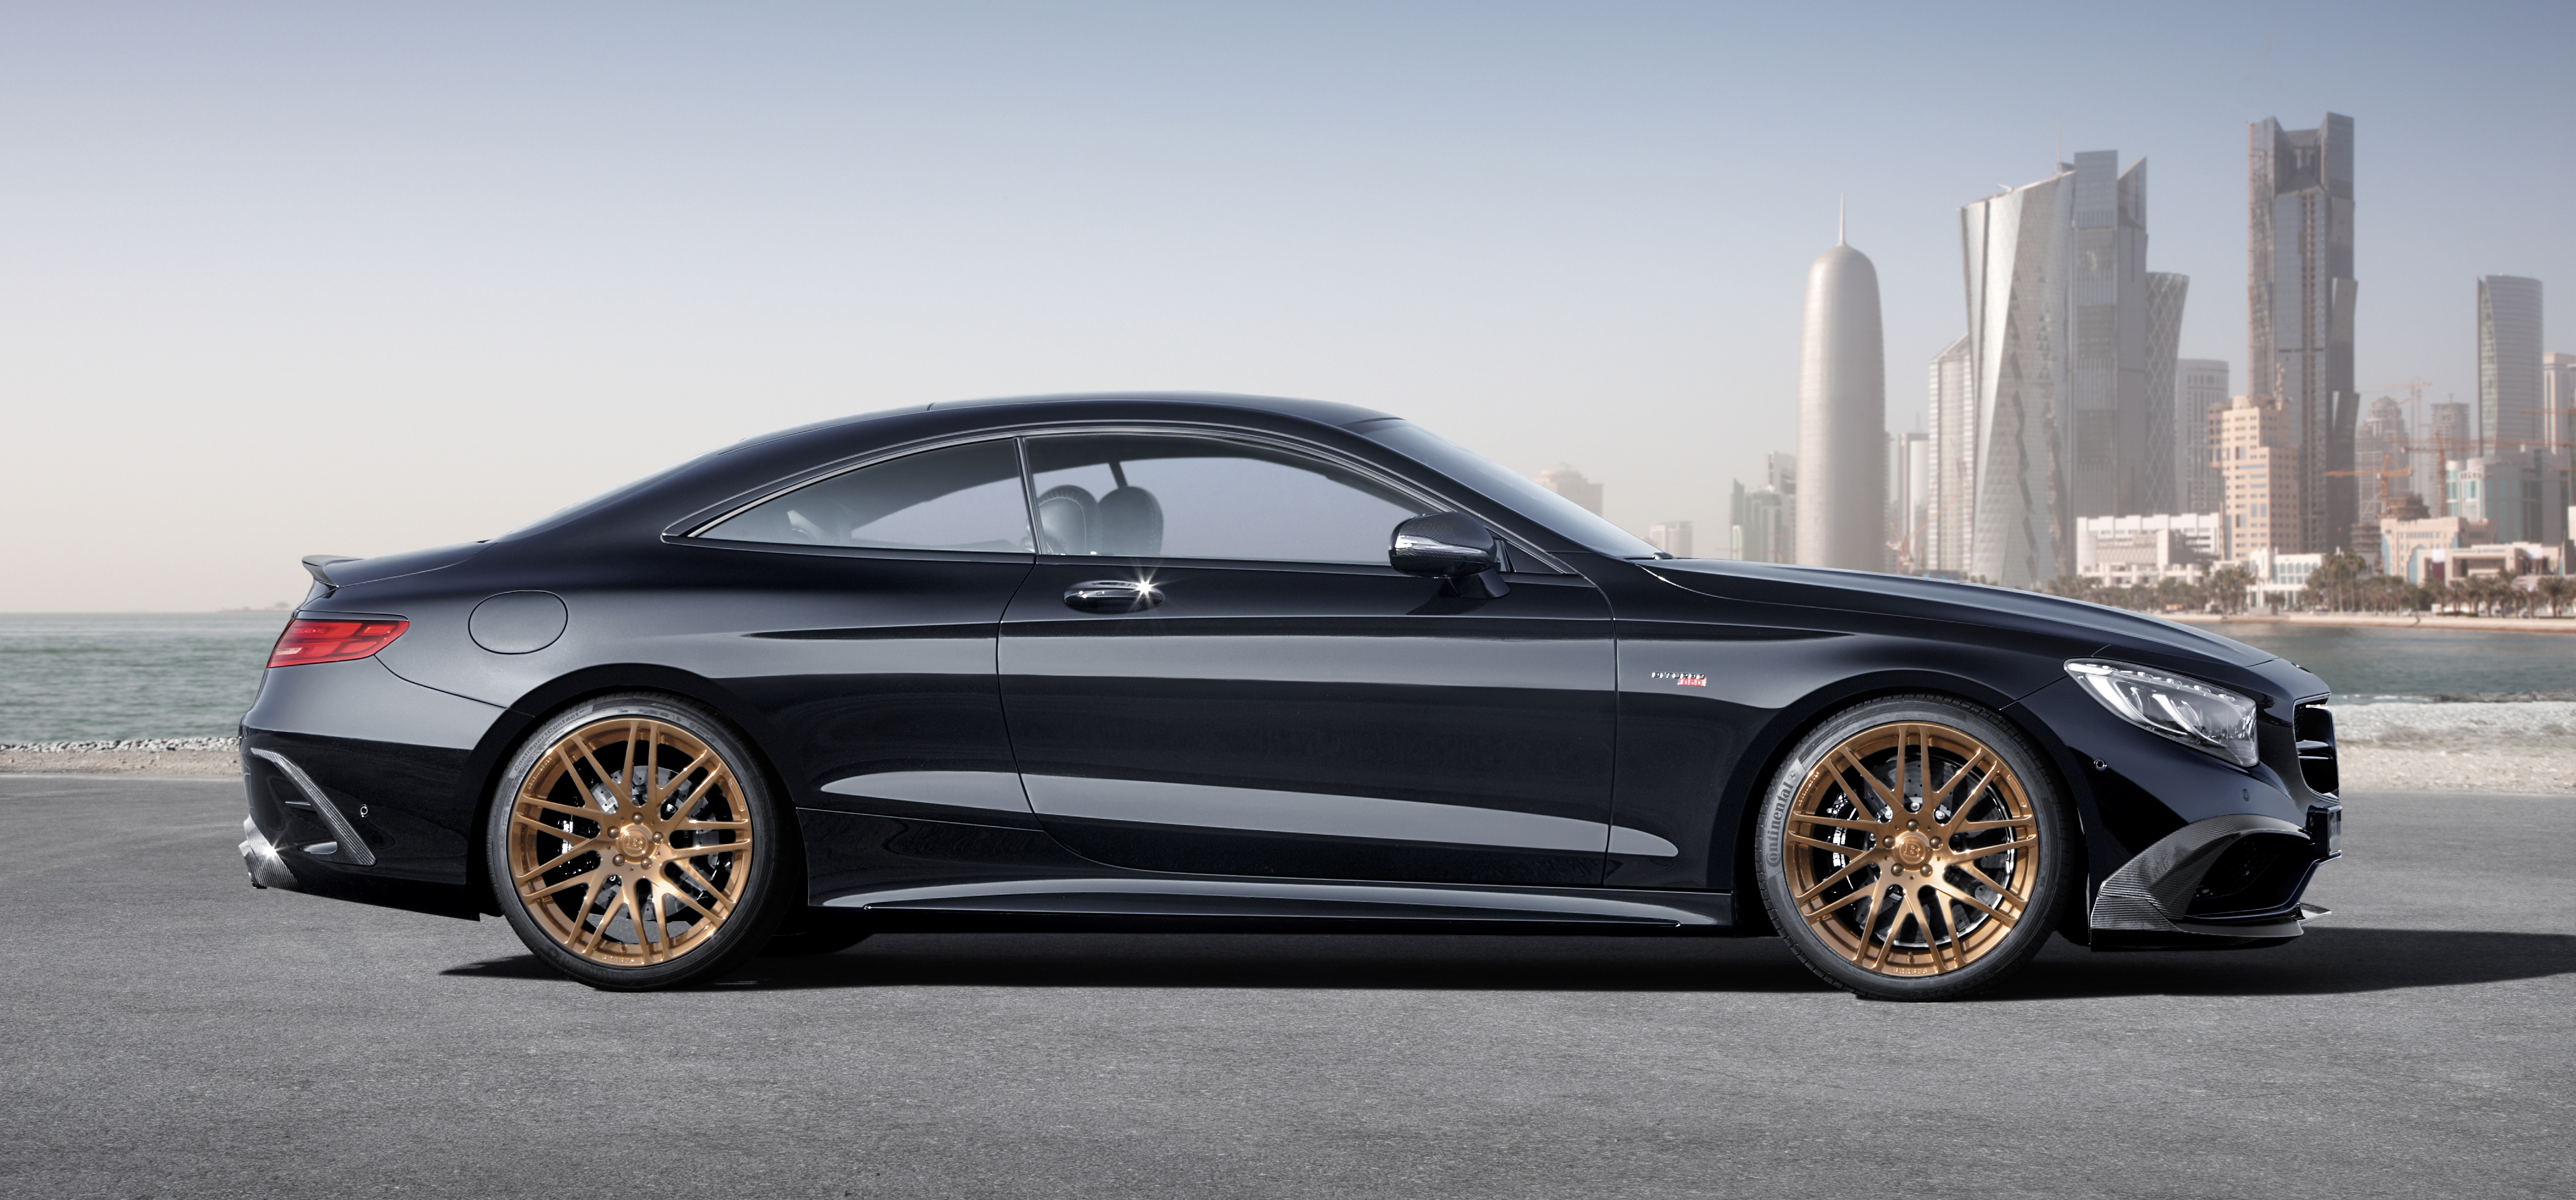 Amg >> Brabus 850 6.0 Biturbo Coupe – Mercedes S 63 AMG Coupe with 850 hp, 1,450 Nm and 350 km/h top ...